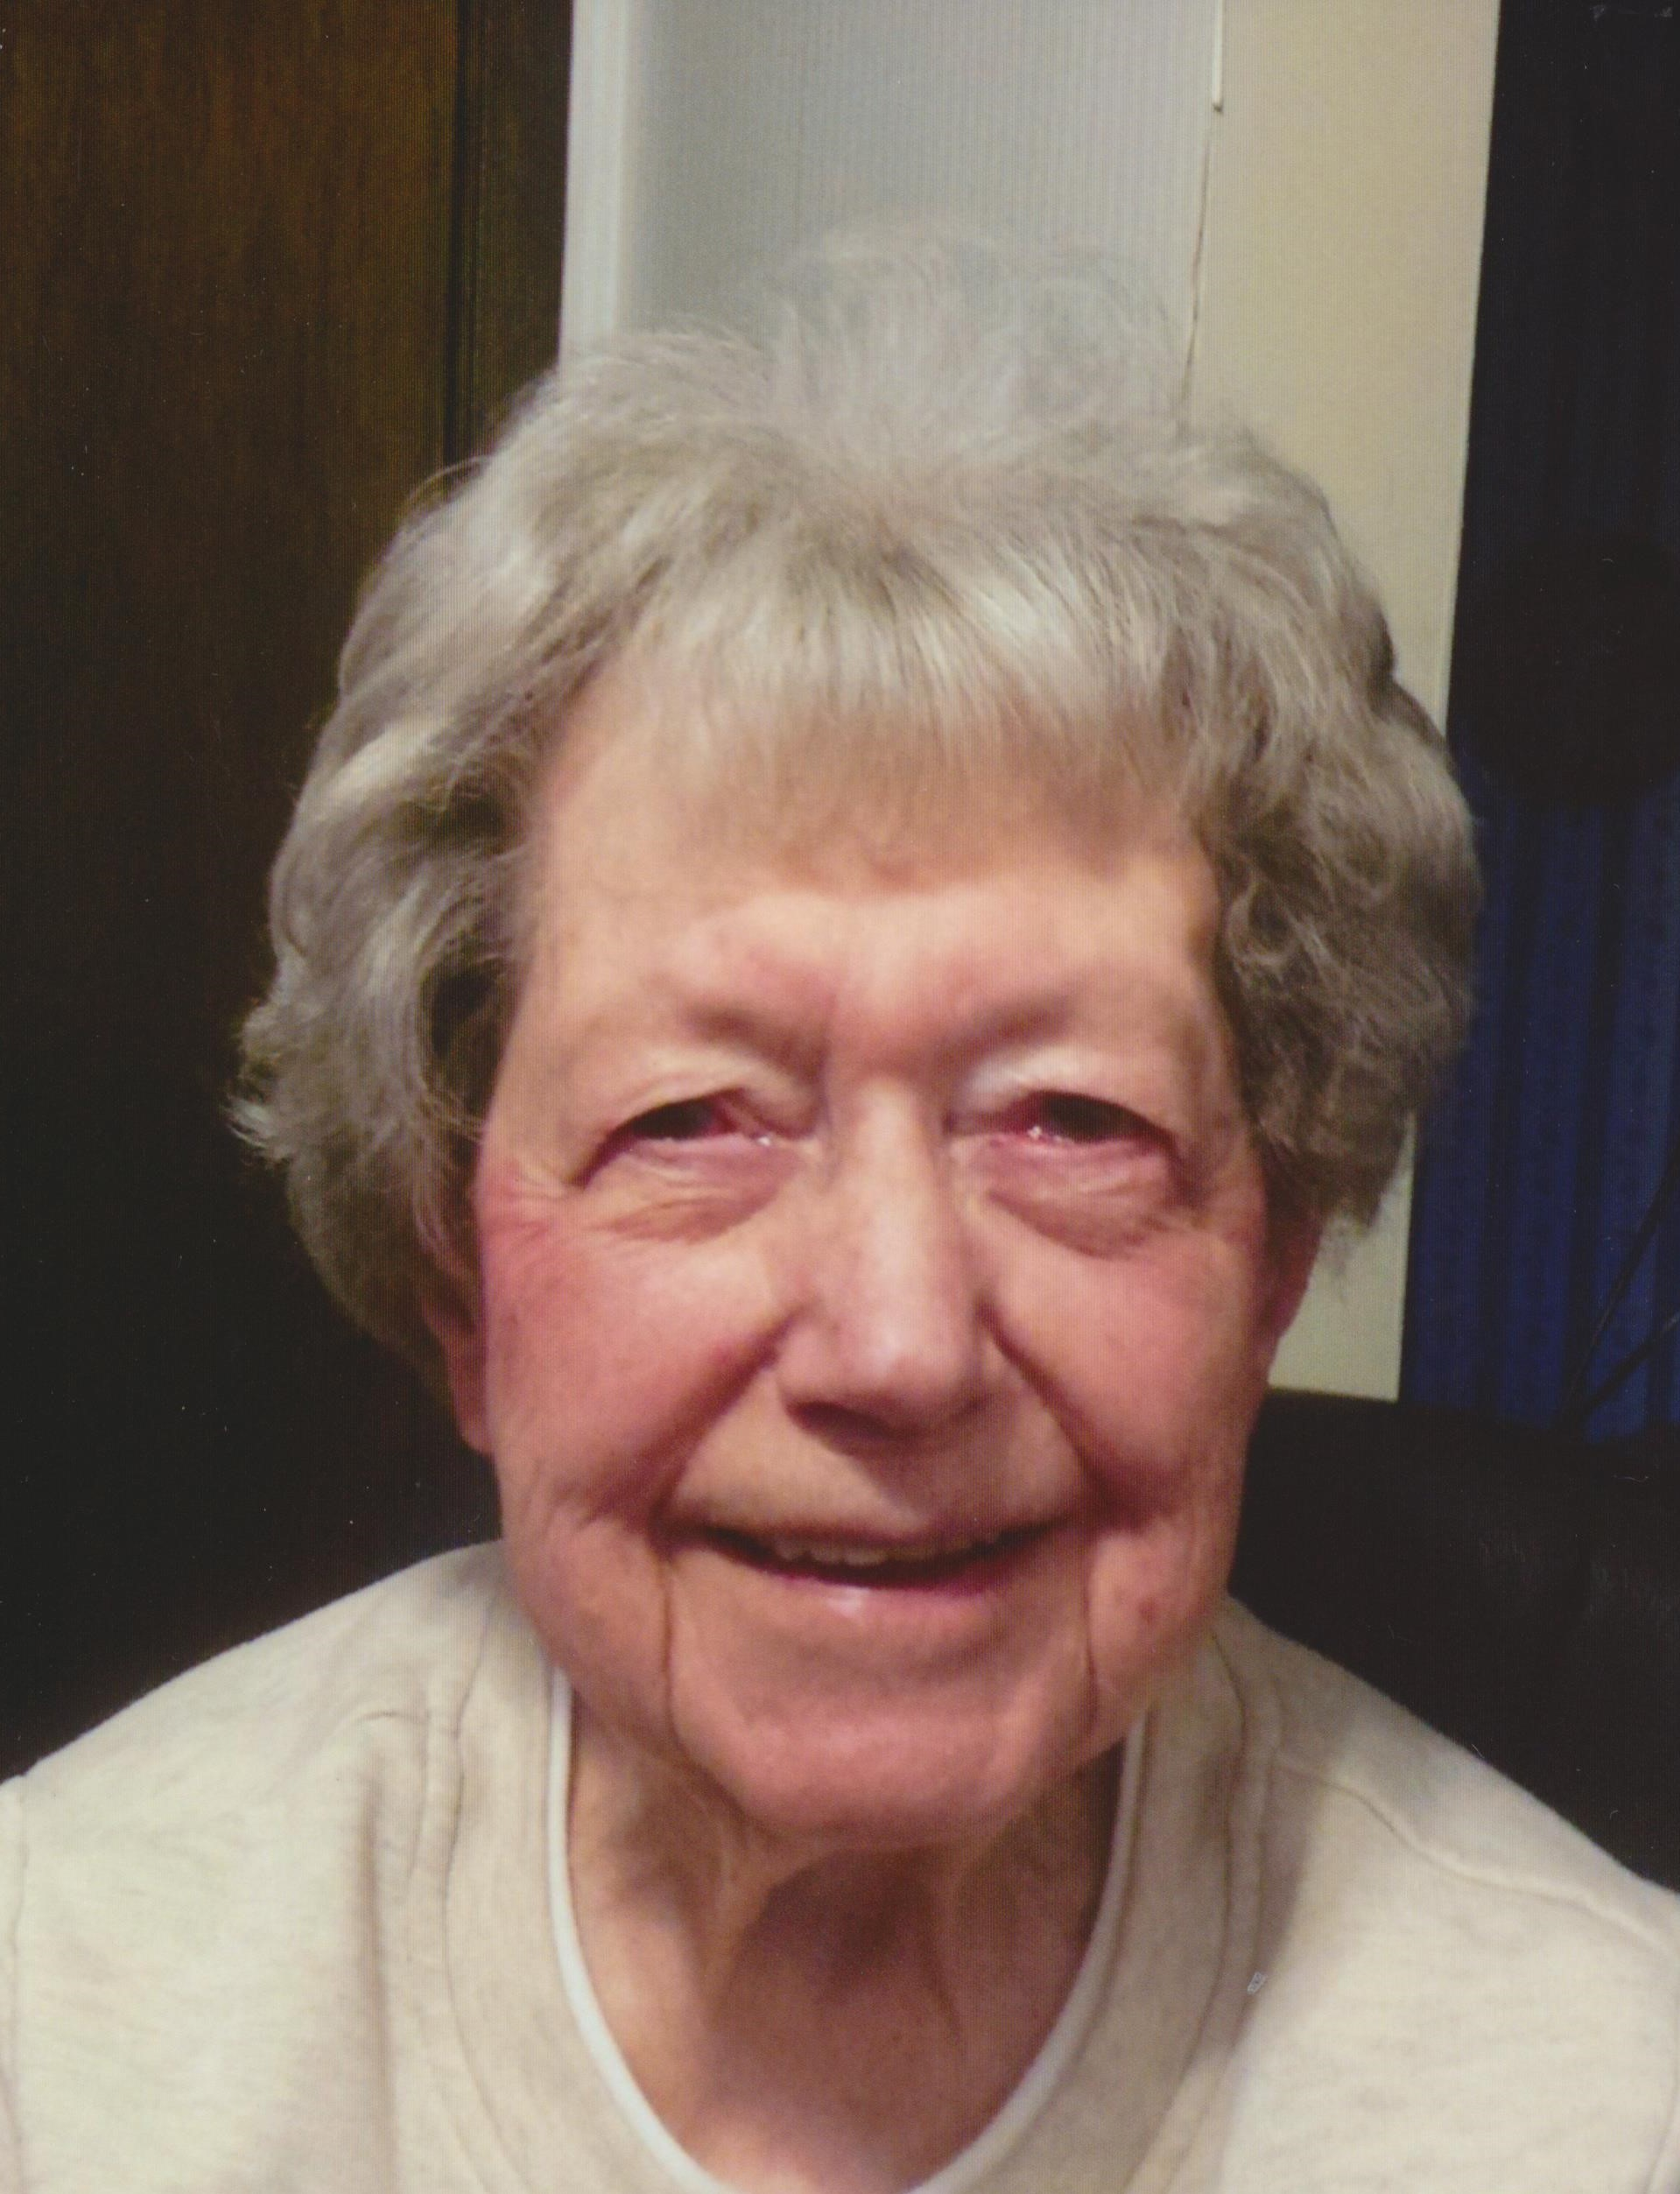 Obituary for frances l peterson harrison send flowers obituary for frances l peterson harrison send flowers fippinger funeral home izmirmasajfo